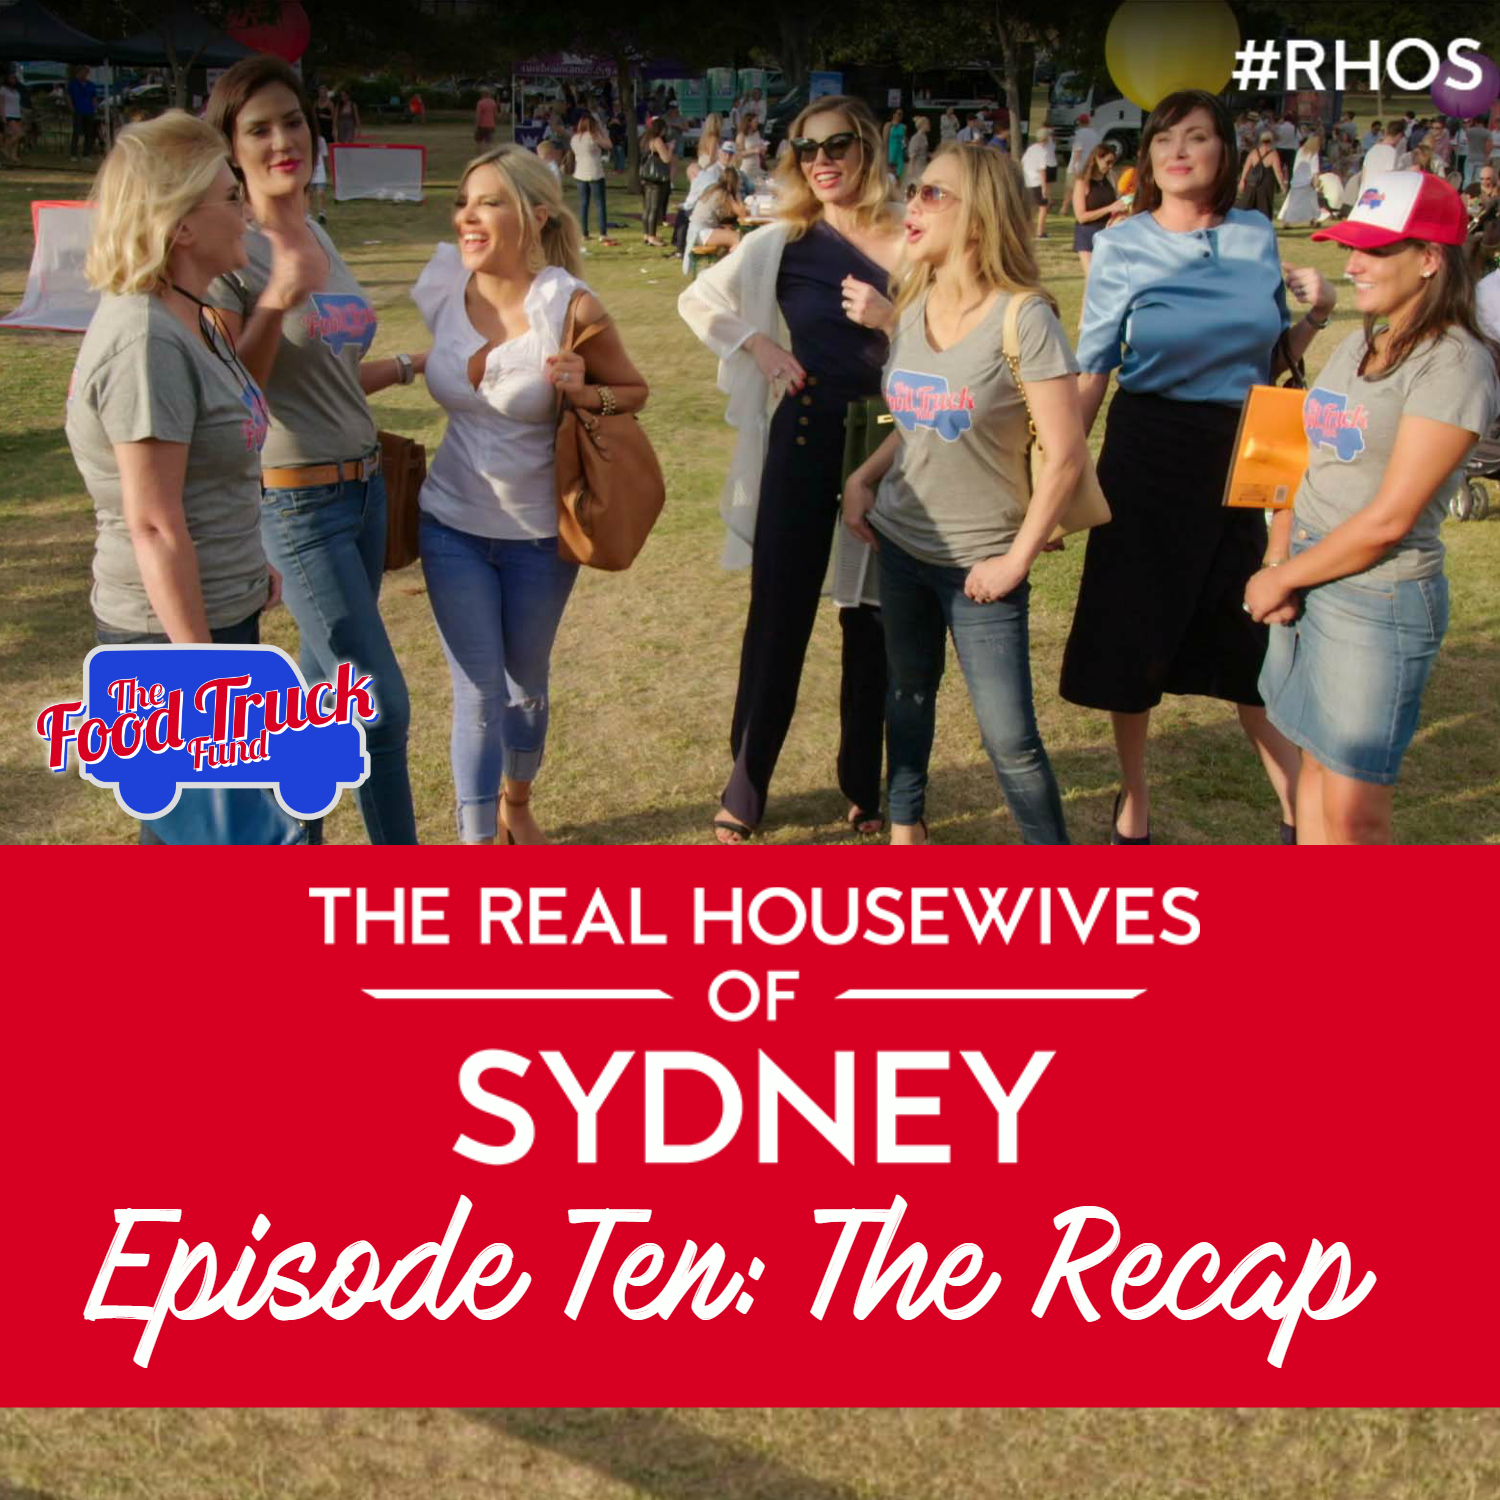 Find out what happened on The Real Housewives of Sydney Series 1 Episode 10 as housewife cast member Nicole O'Neil shares her recap and behind the scenes gossip her Food Truck Fund Charity Event, Matty's Forever Young Pillow Launch and more.